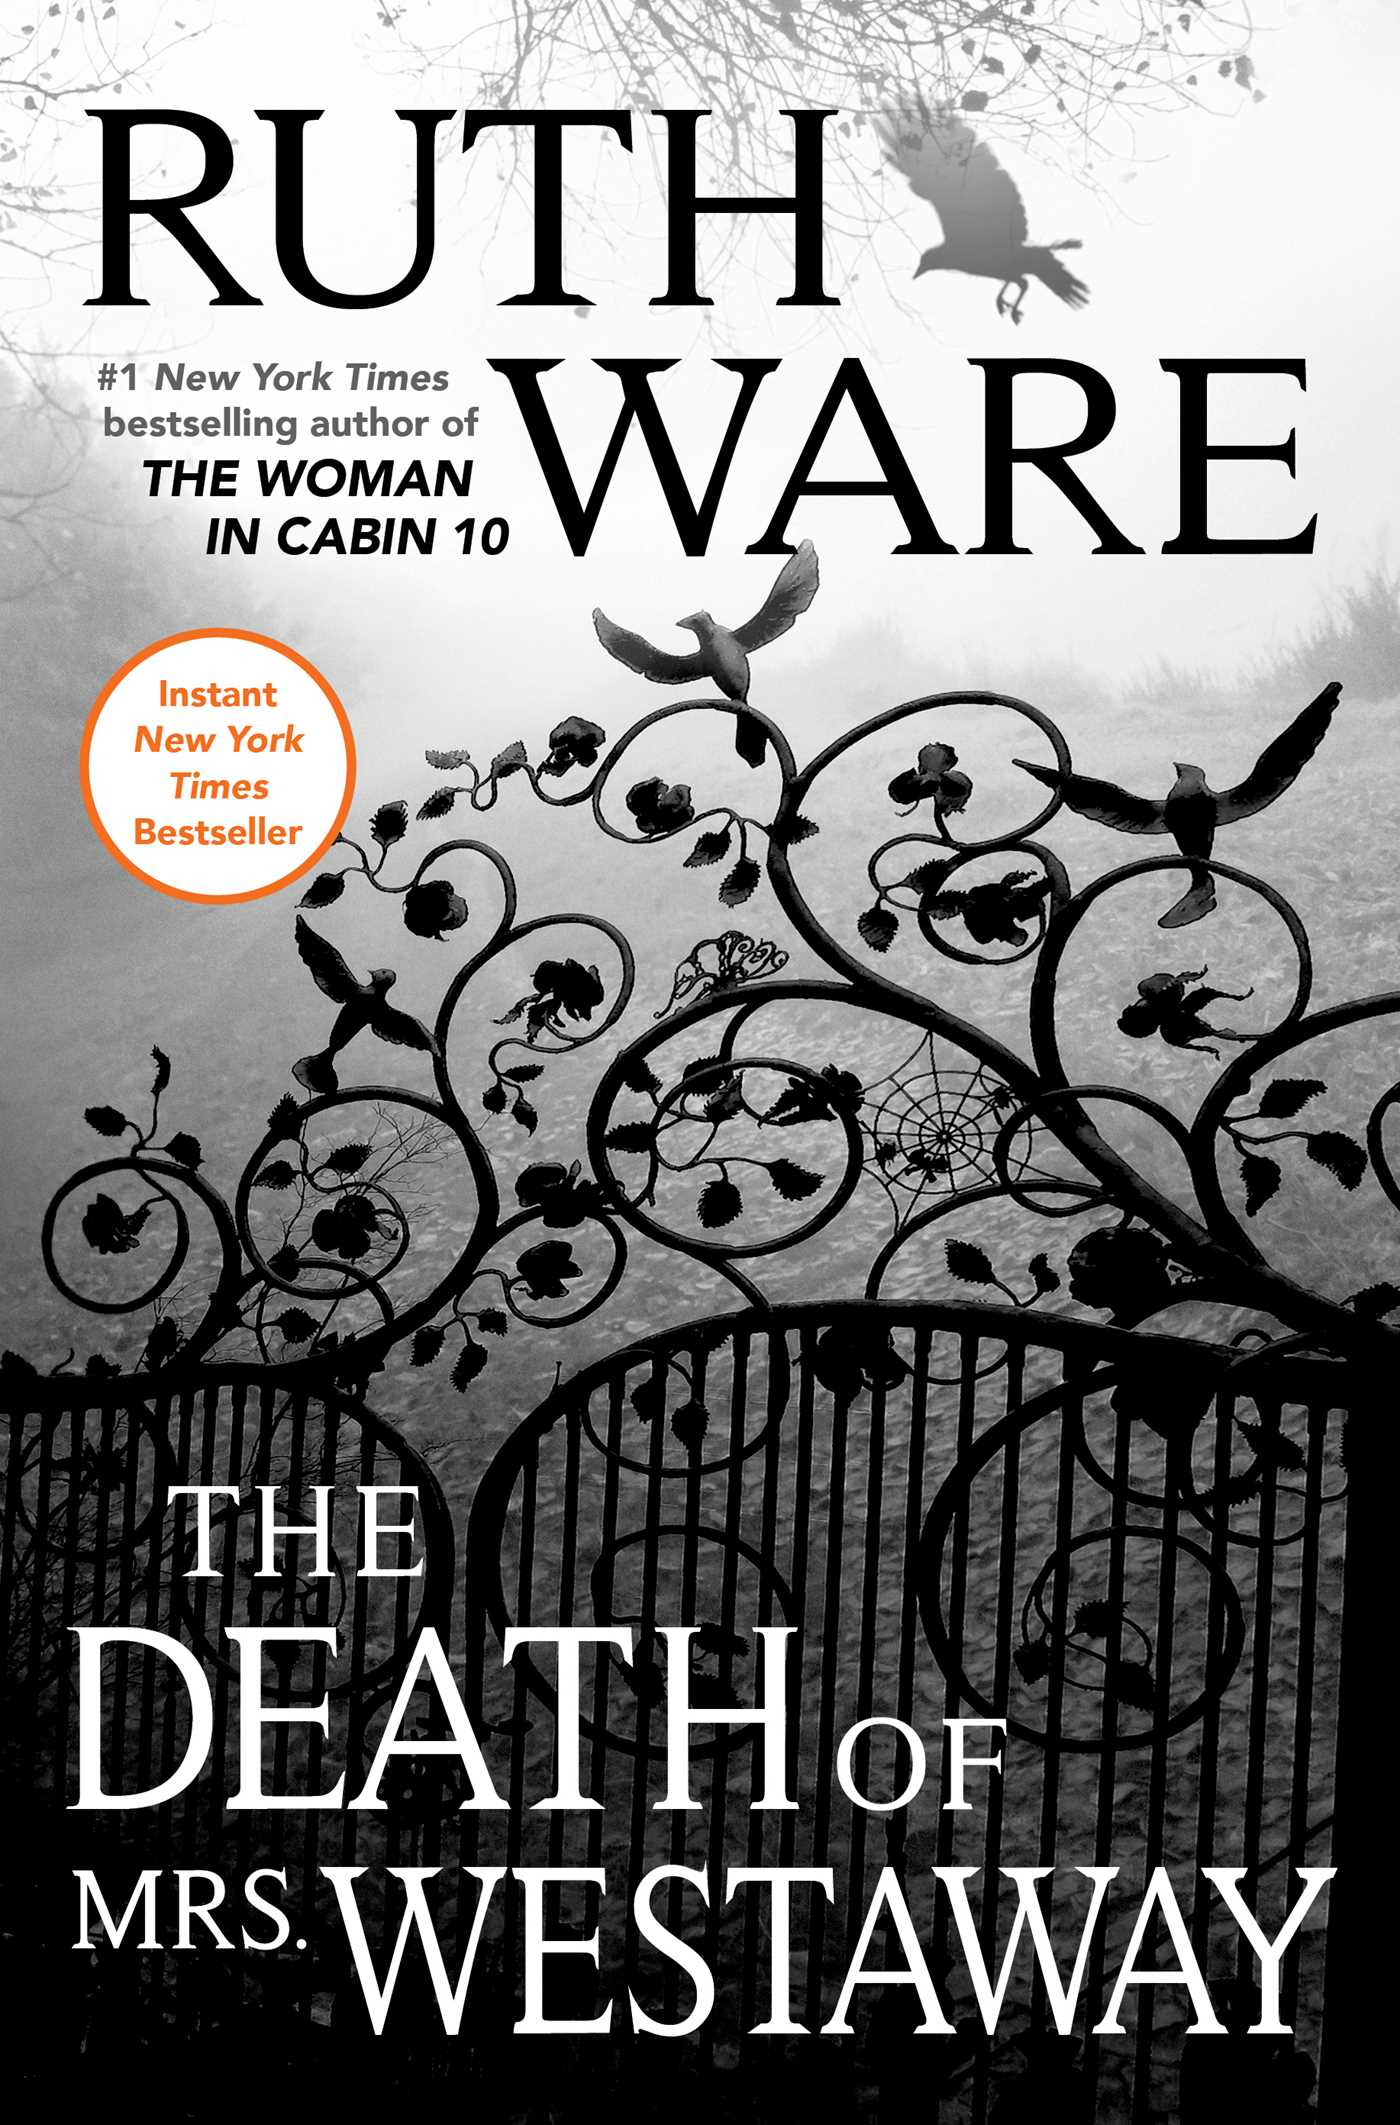 The death of mrs westaway 9781501156212 hr